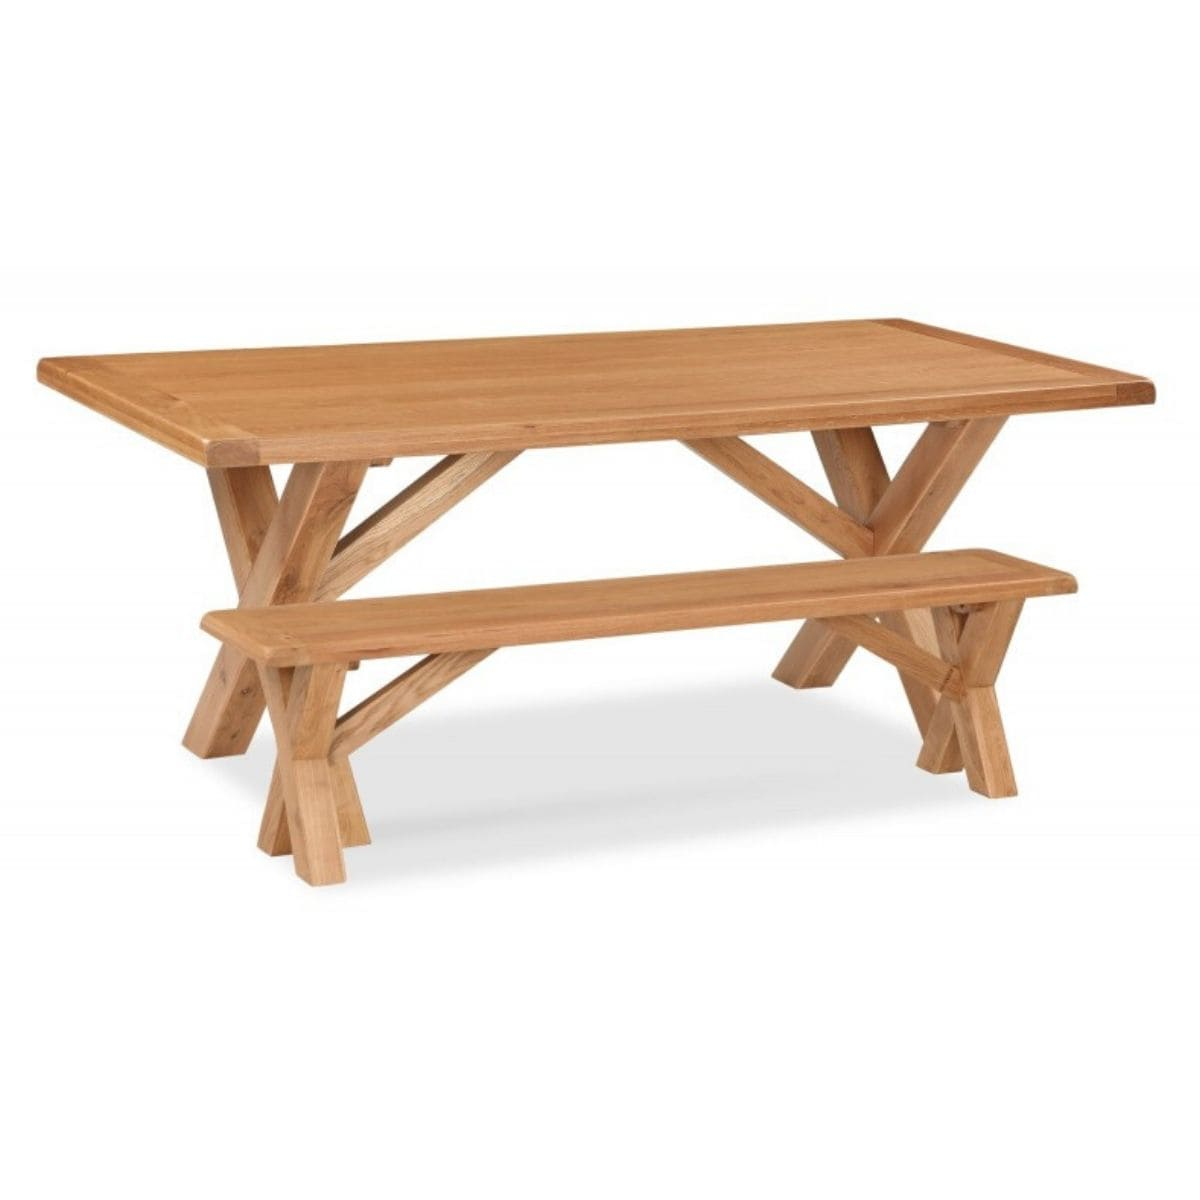 Sonia Fixed Cross Dining Table